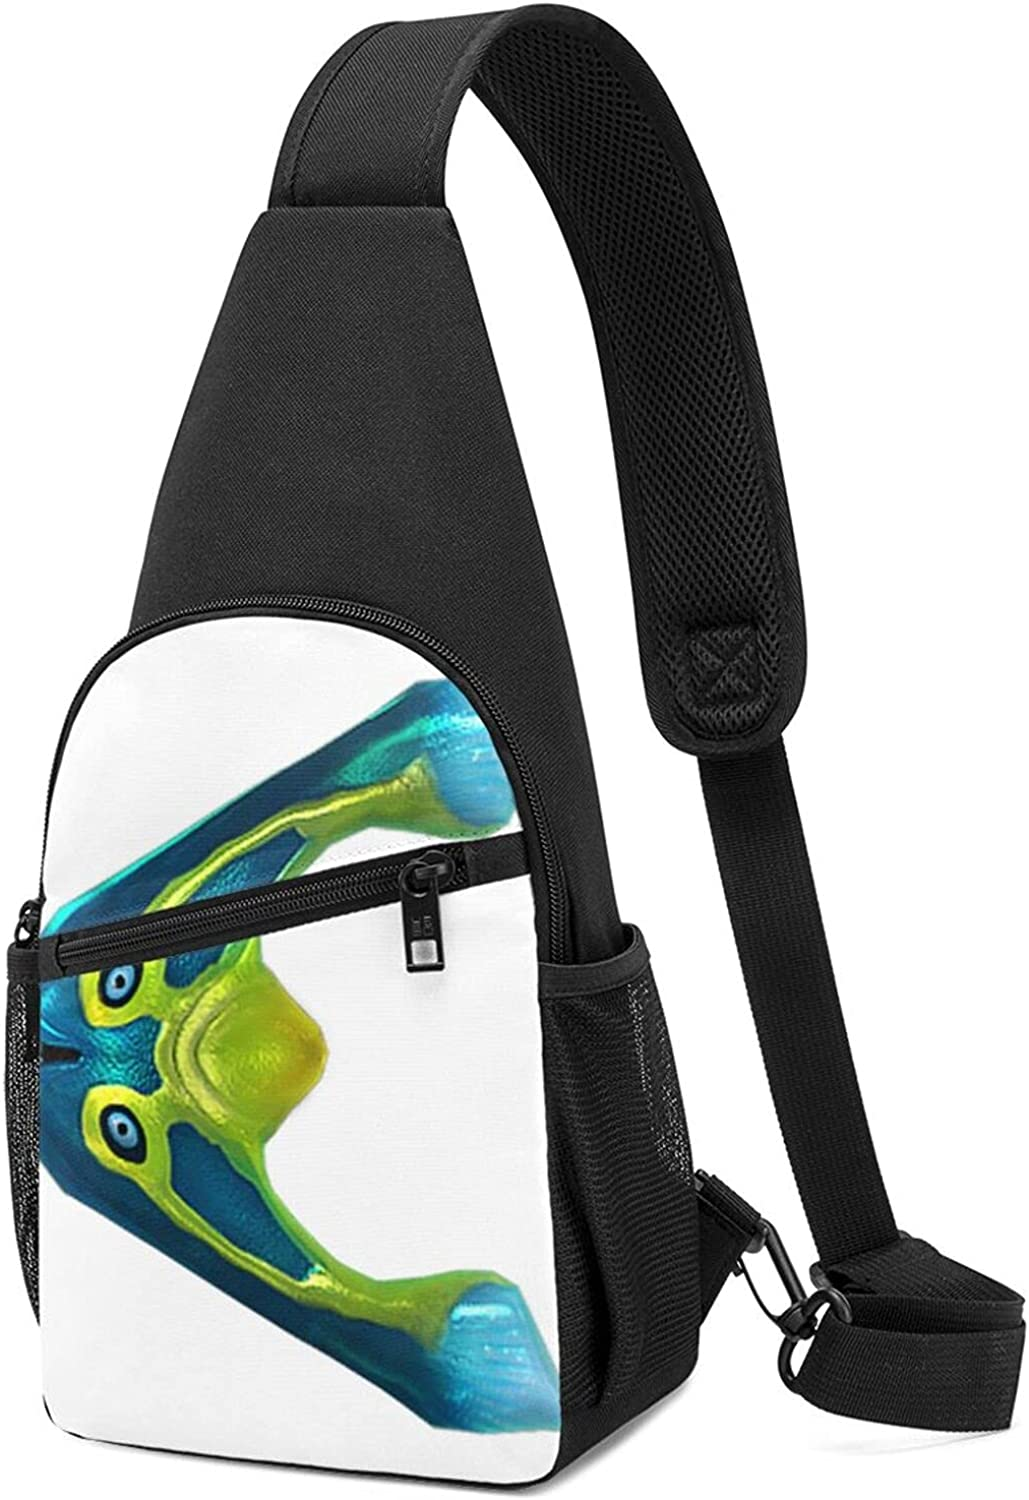 Chest Bag Boomerang Fish - Backpac Ranking TOP10 Super beauty product restock quality top Shoulder Subnautica Sling